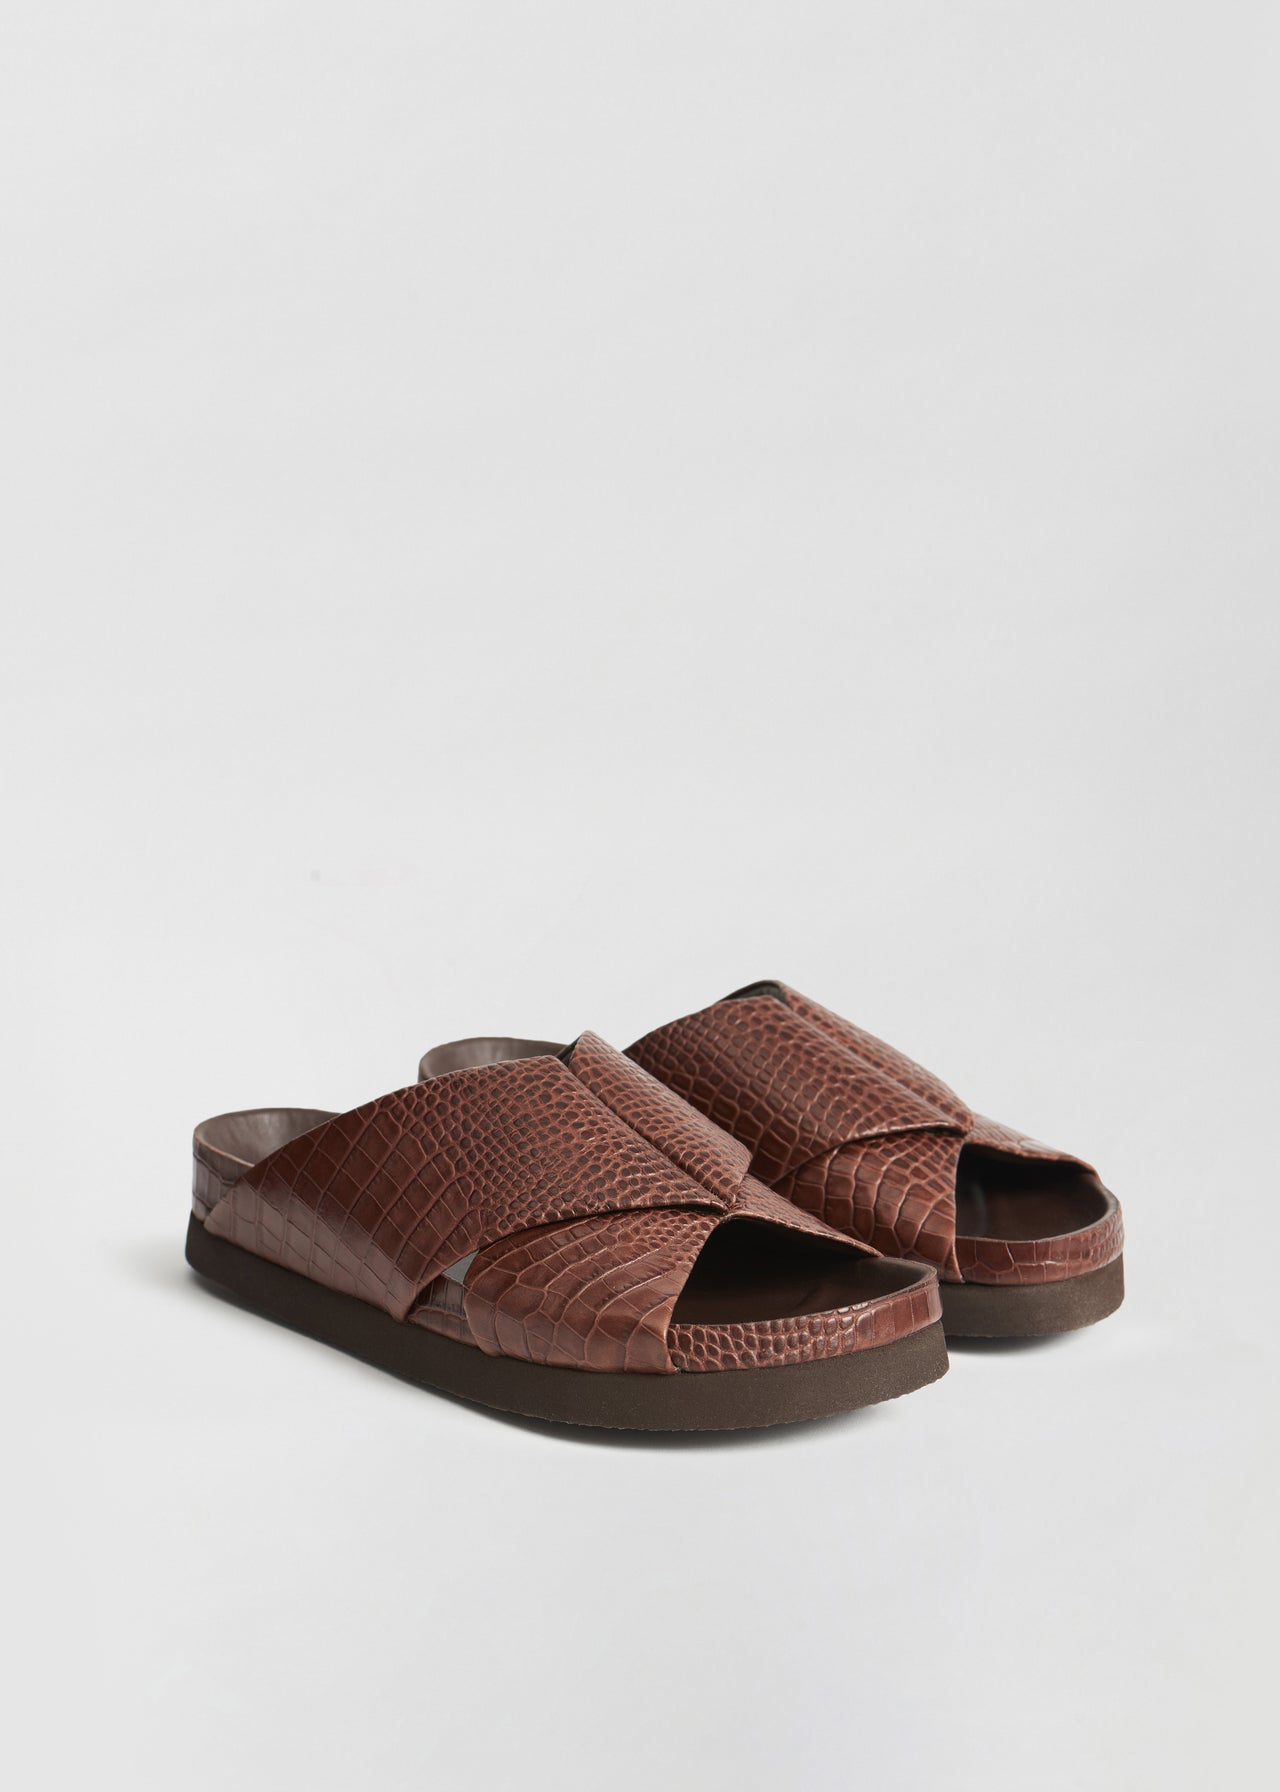 Slide Sandal in Embossed Leather - Dark Brown